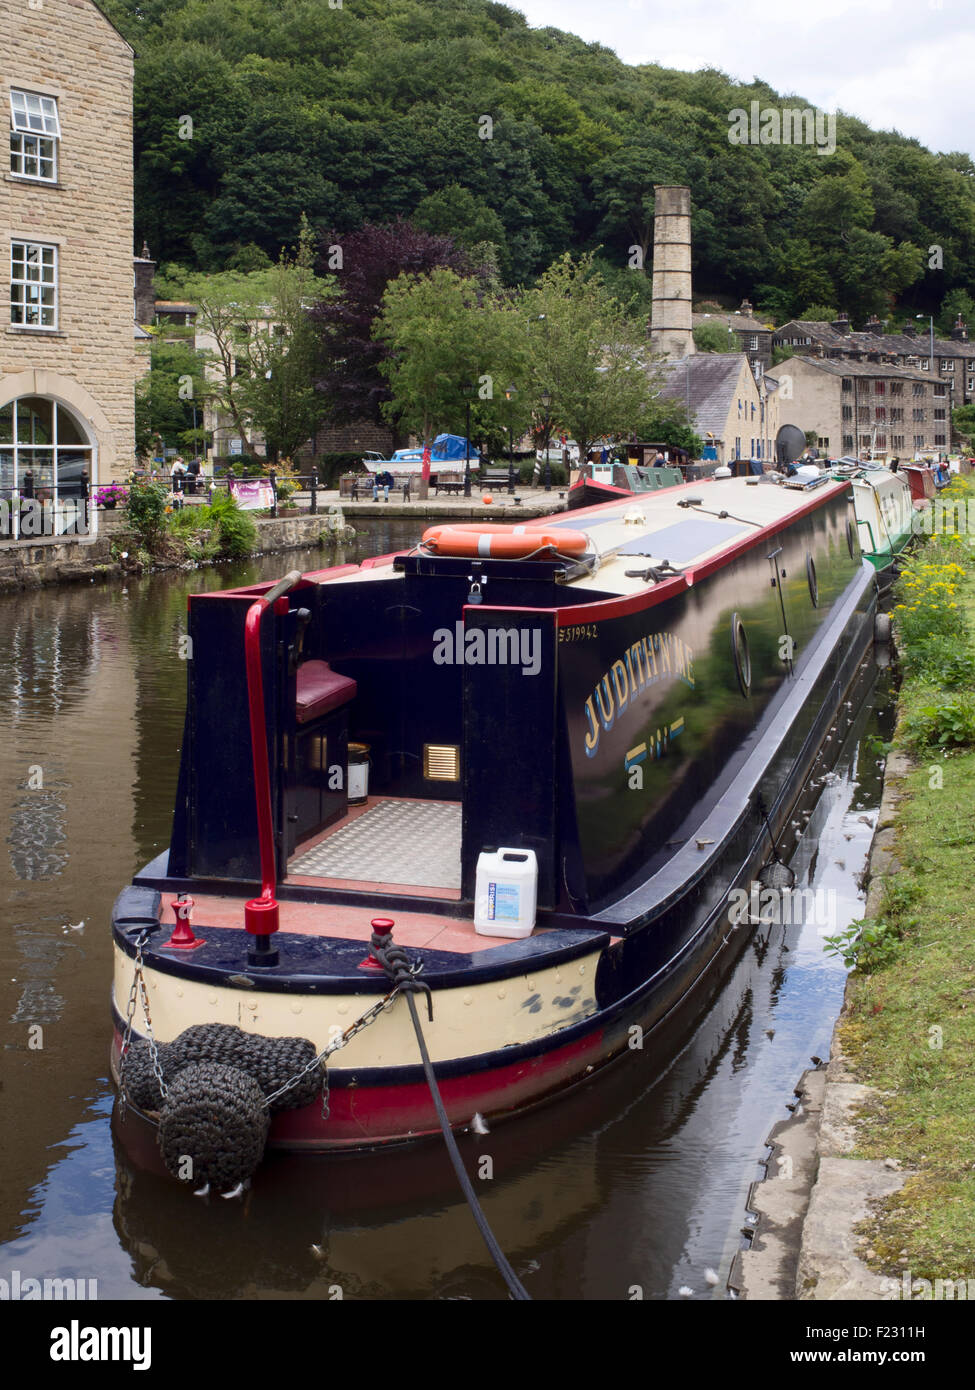 Narrowboats on The Rochdale Canal at Hebden Bridge West Yorkshire England - Stock Image